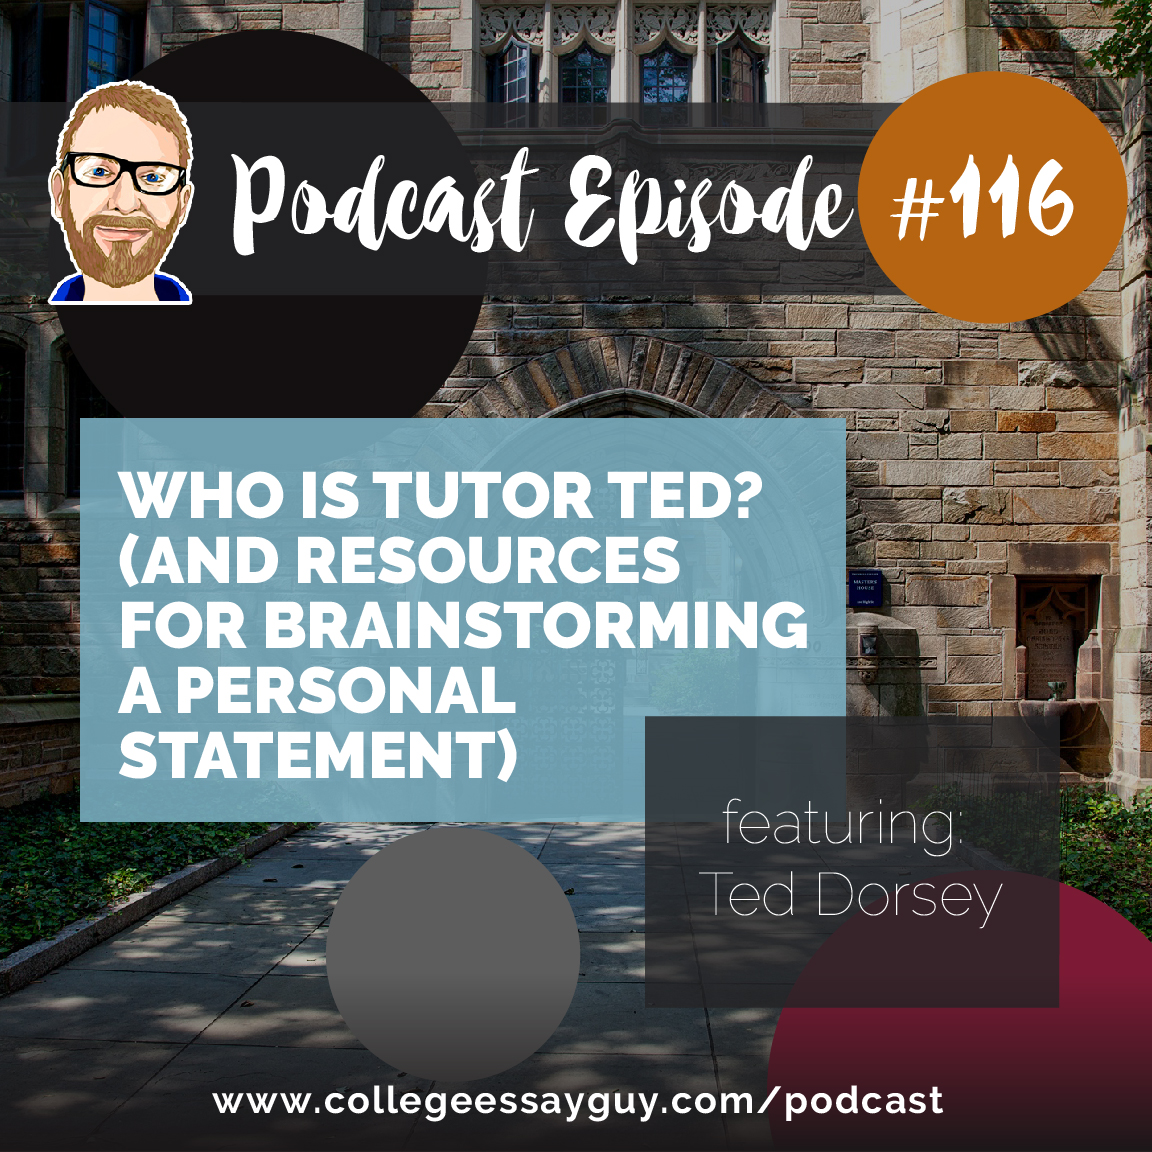 This is the first of two podcasts with Ted Dorsey, also known as Tutor Ted, who scored perfectly on the ACT, SAT, PSAT and runs a cool test prep company called (what else?) Tutor Ted.